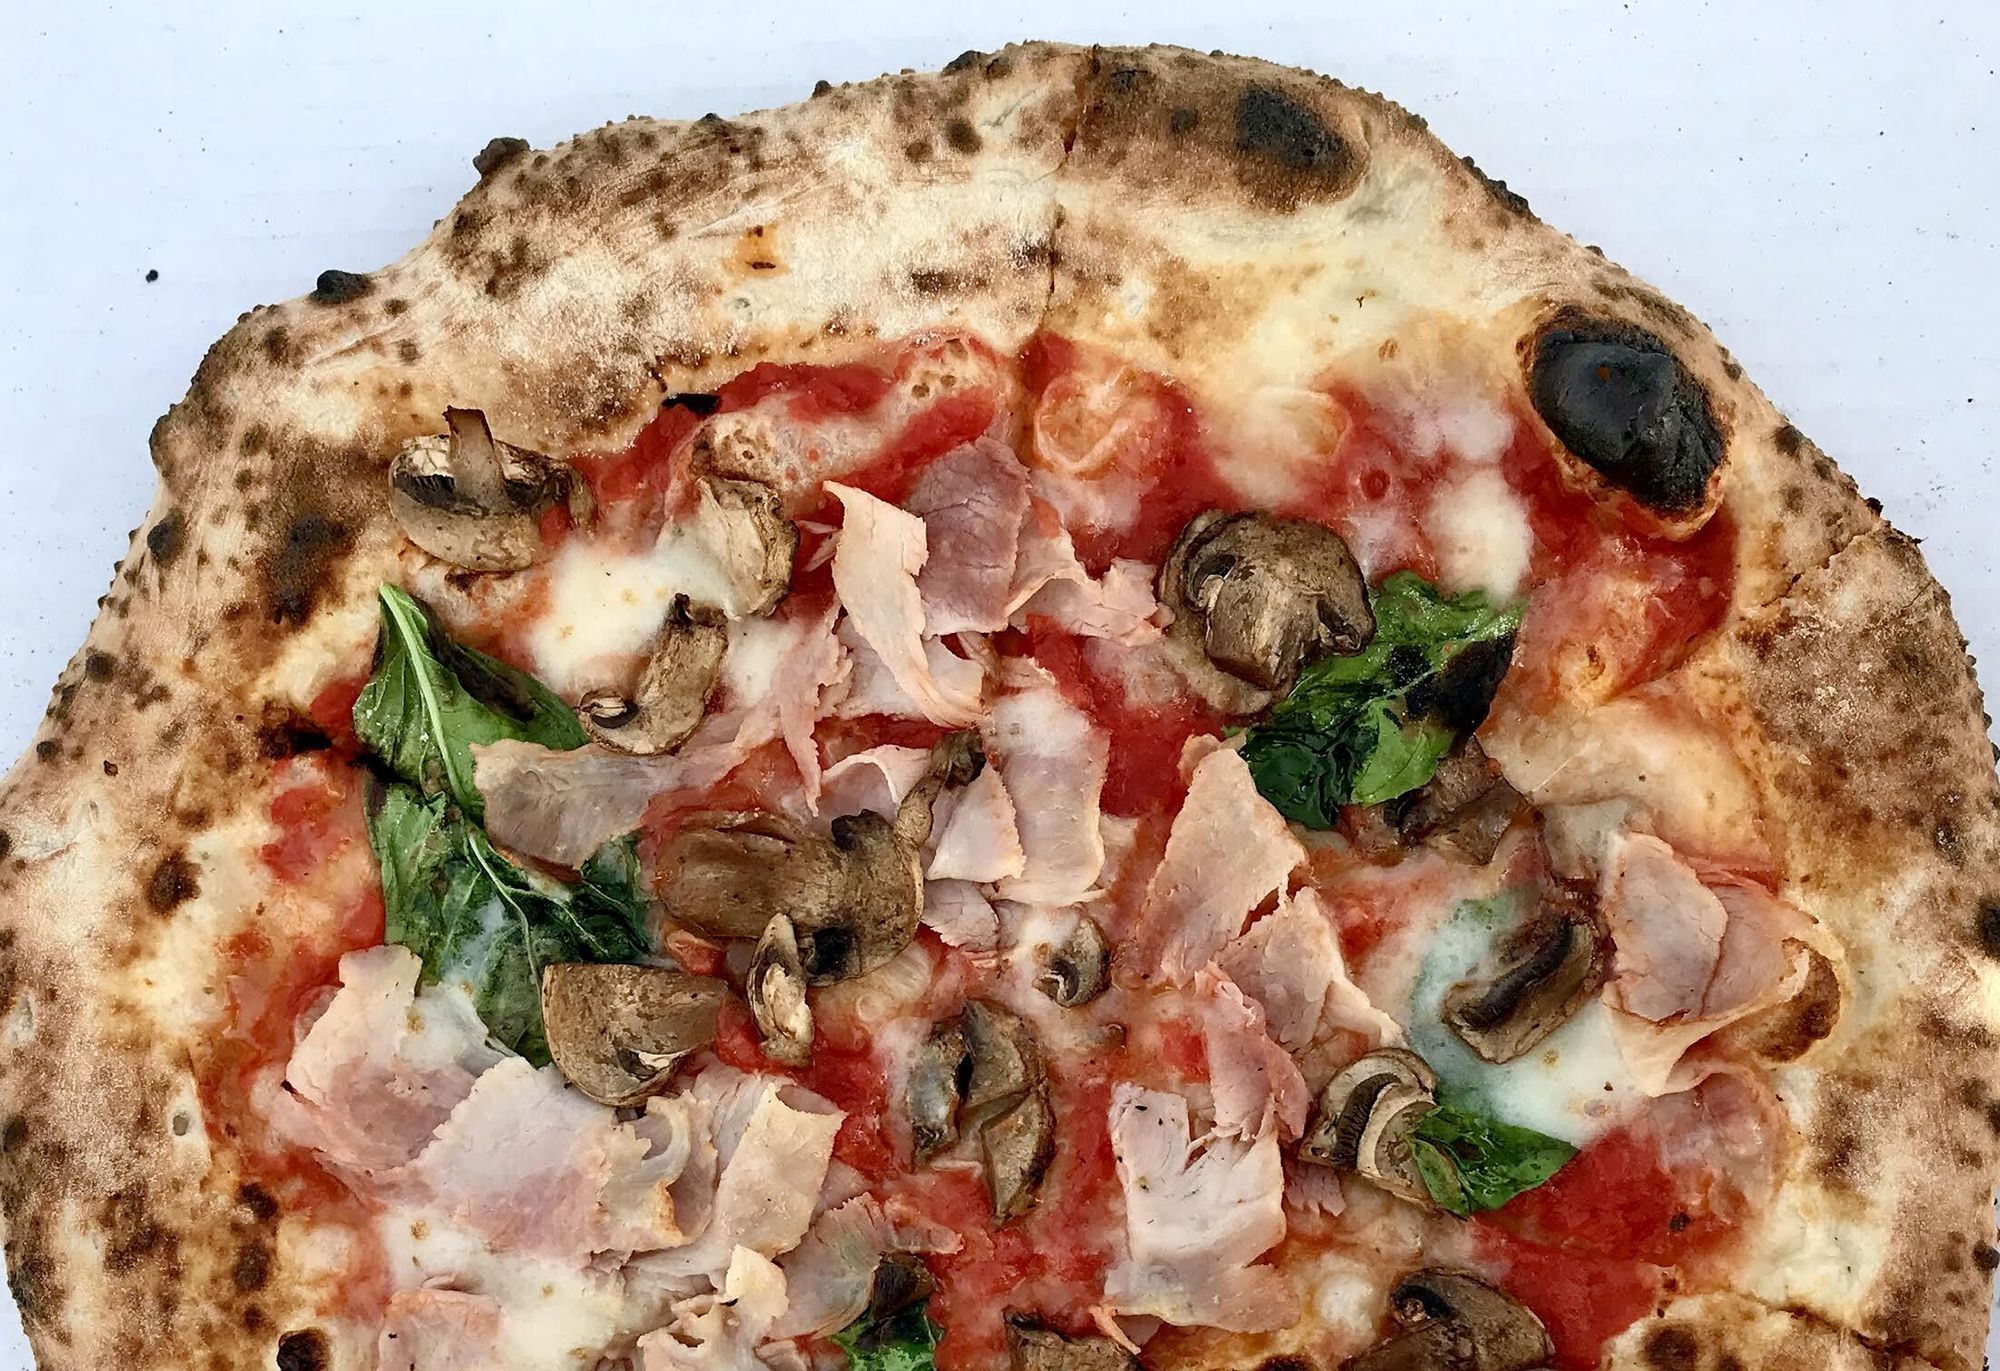 A wood-fired ham and mushroom pizza from Punch. Photo by Rick Nelson.